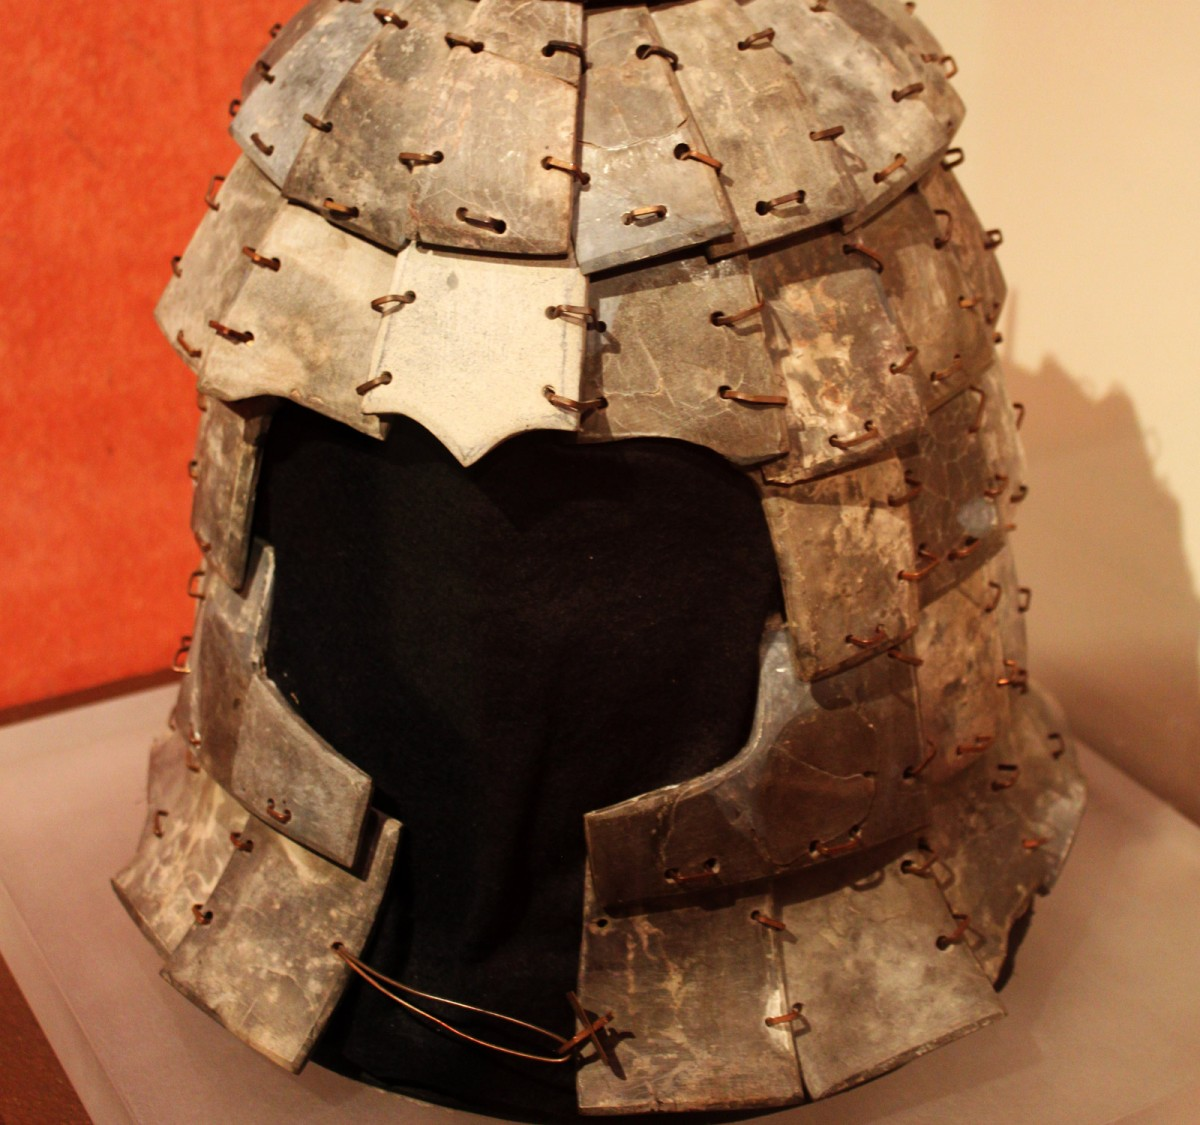 Helmet. Qin dynasty (221-206 BC). Limestone. Excavated in 1998 from Pit K9801. Photo: Flickr.